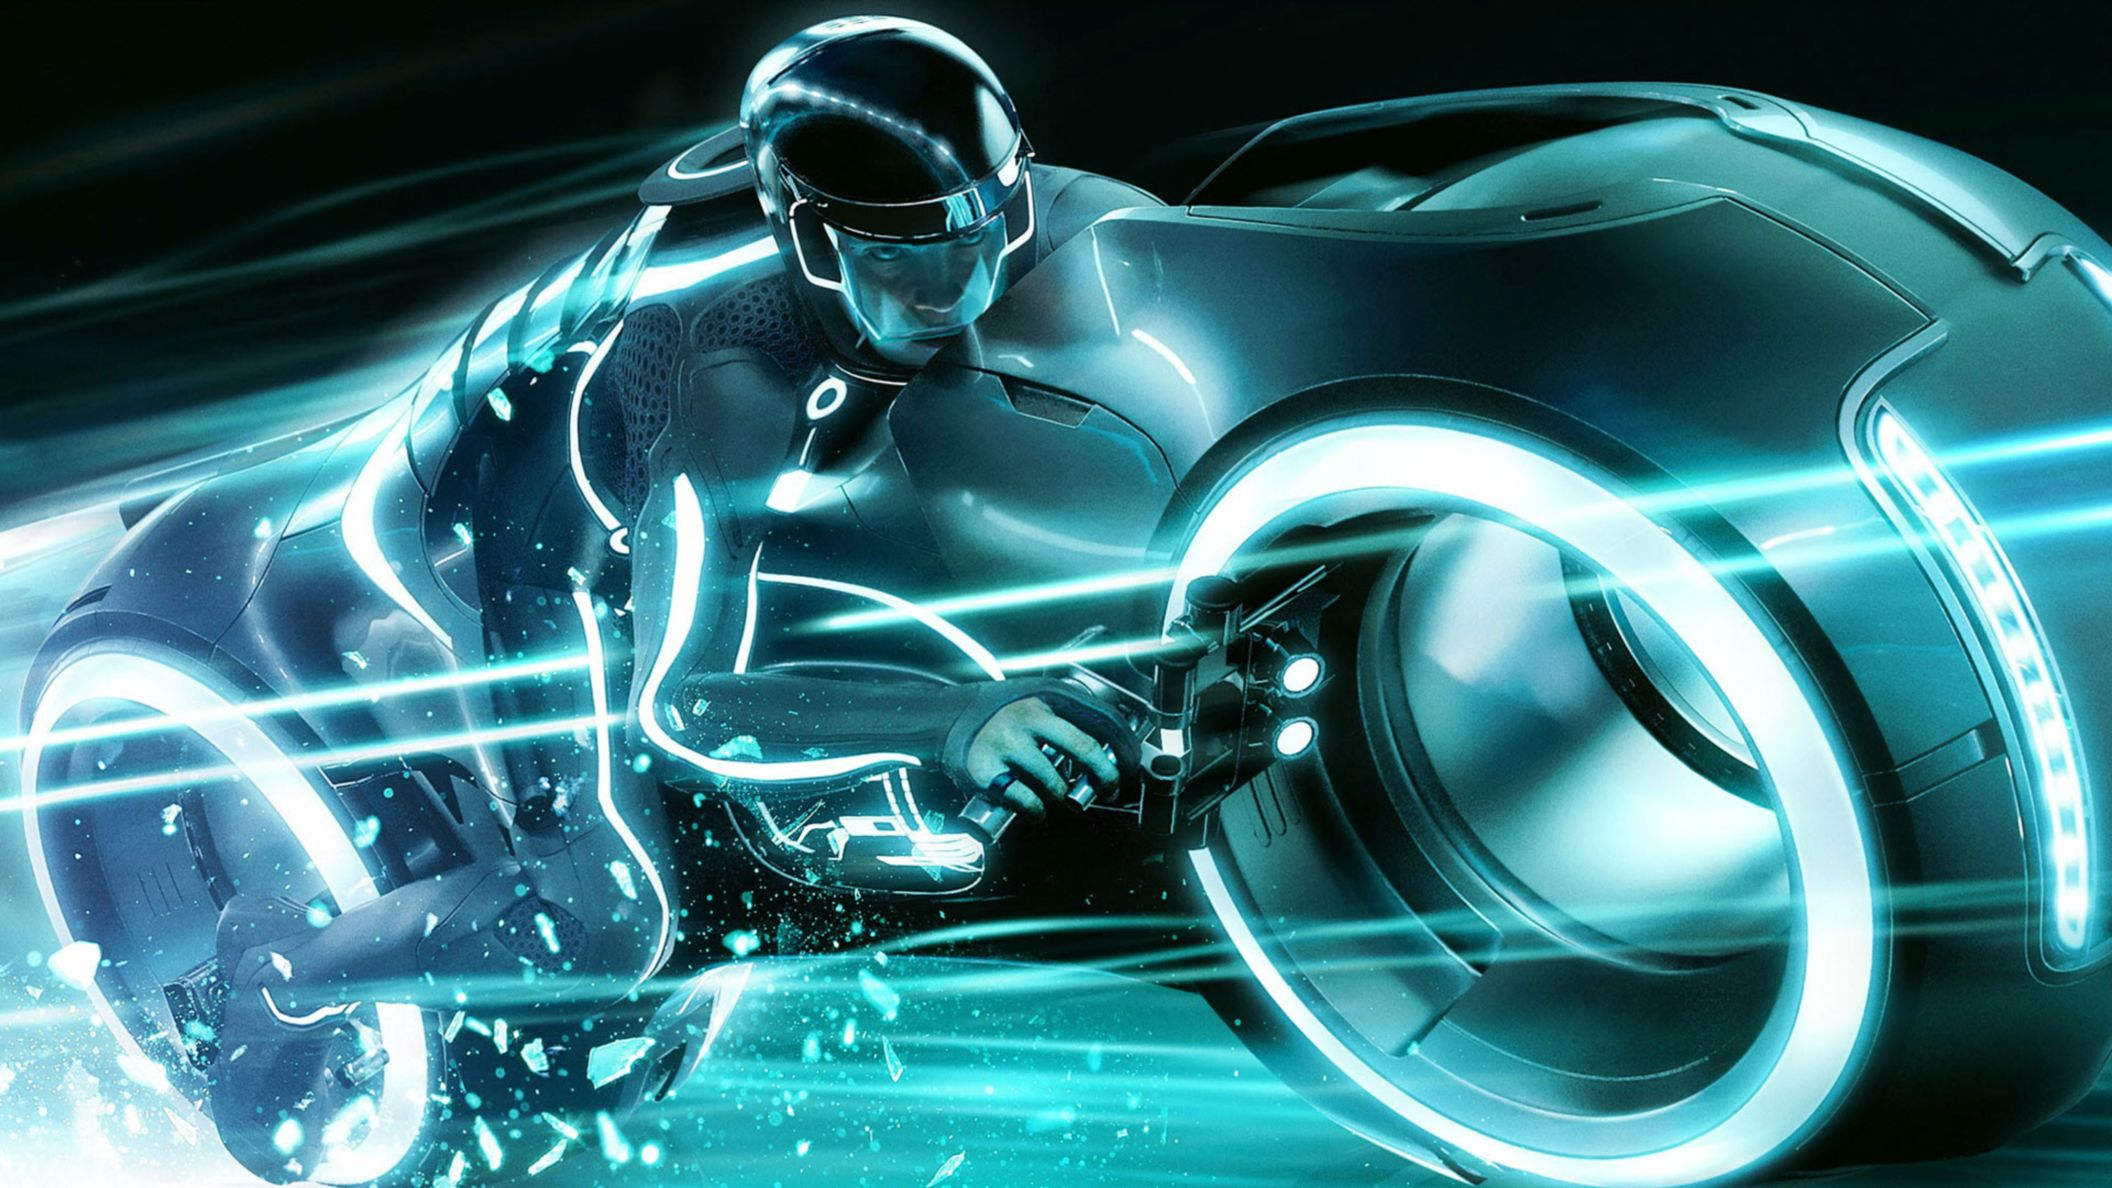 Download free HD Tron Legacy HD 1080p HD Wallpaper, image